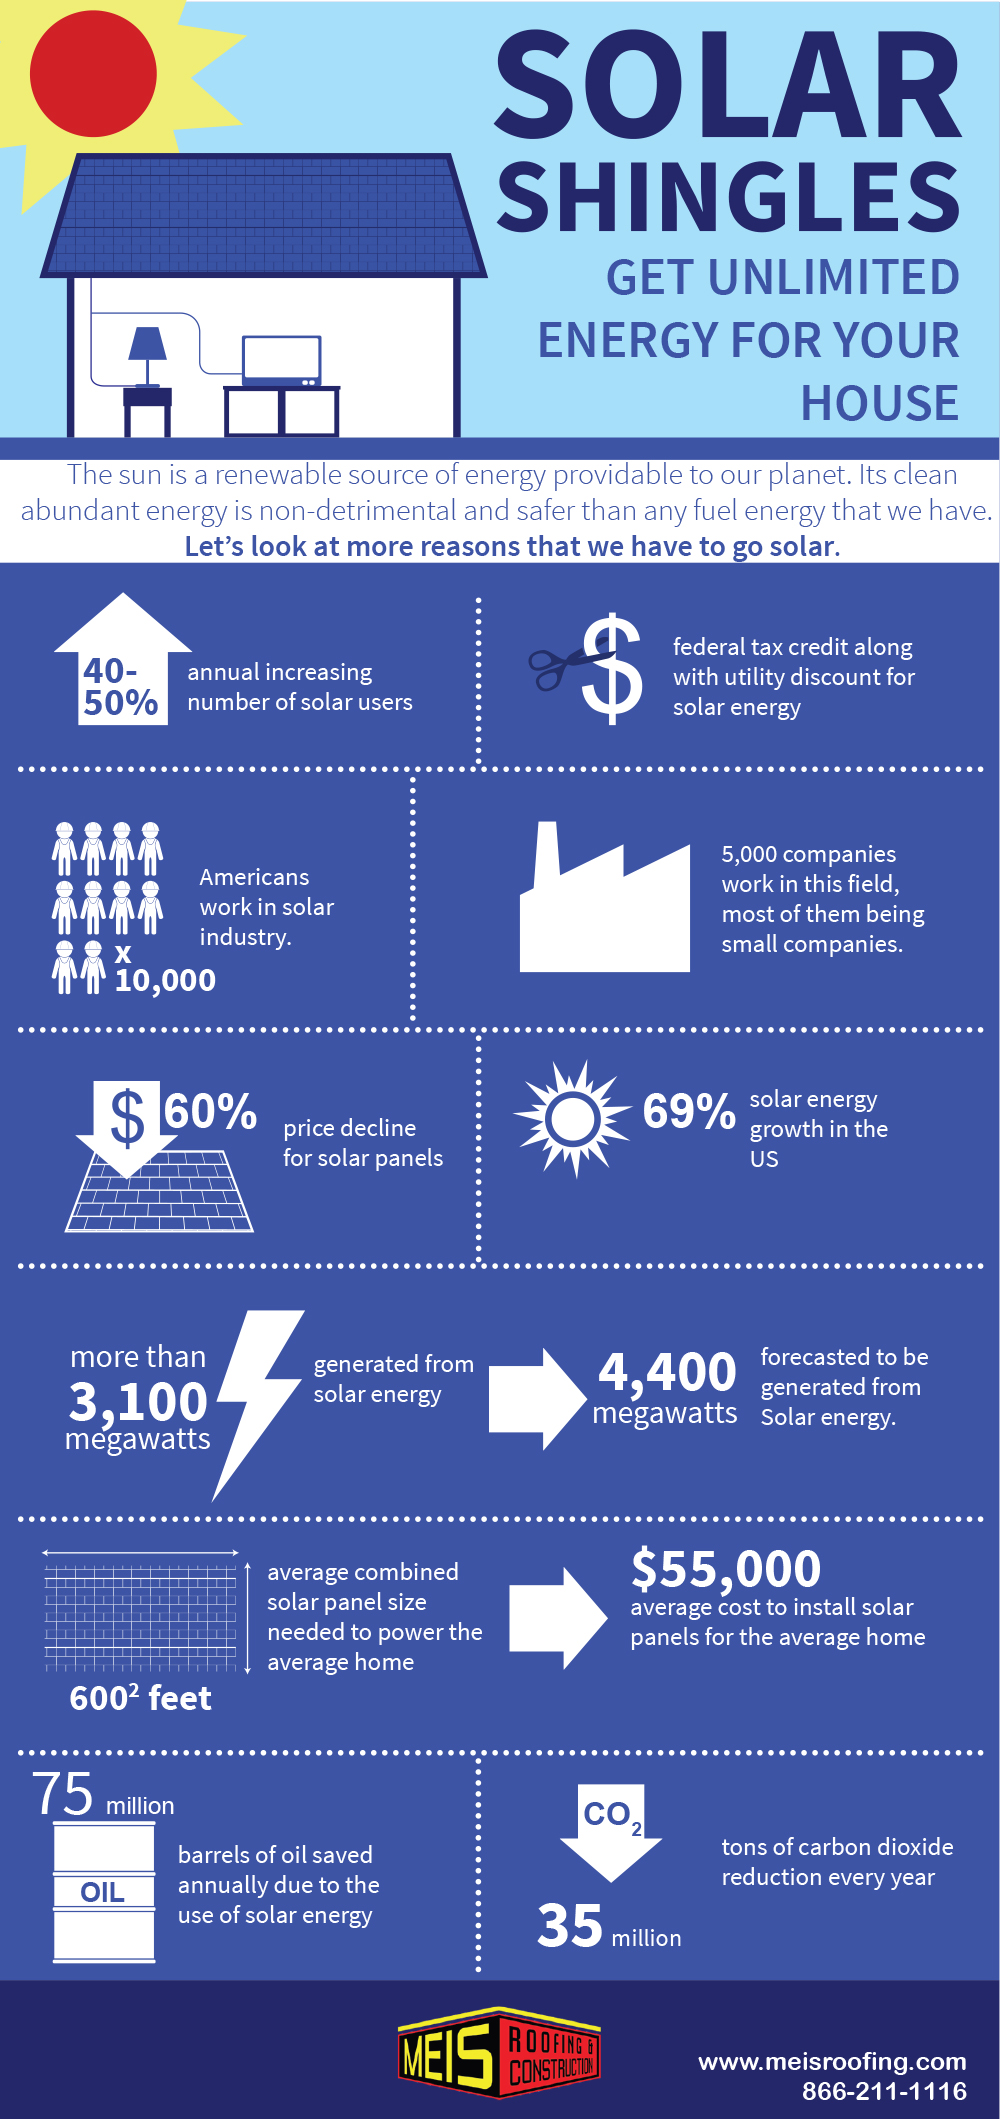 Solar Shingles Roof Infographic